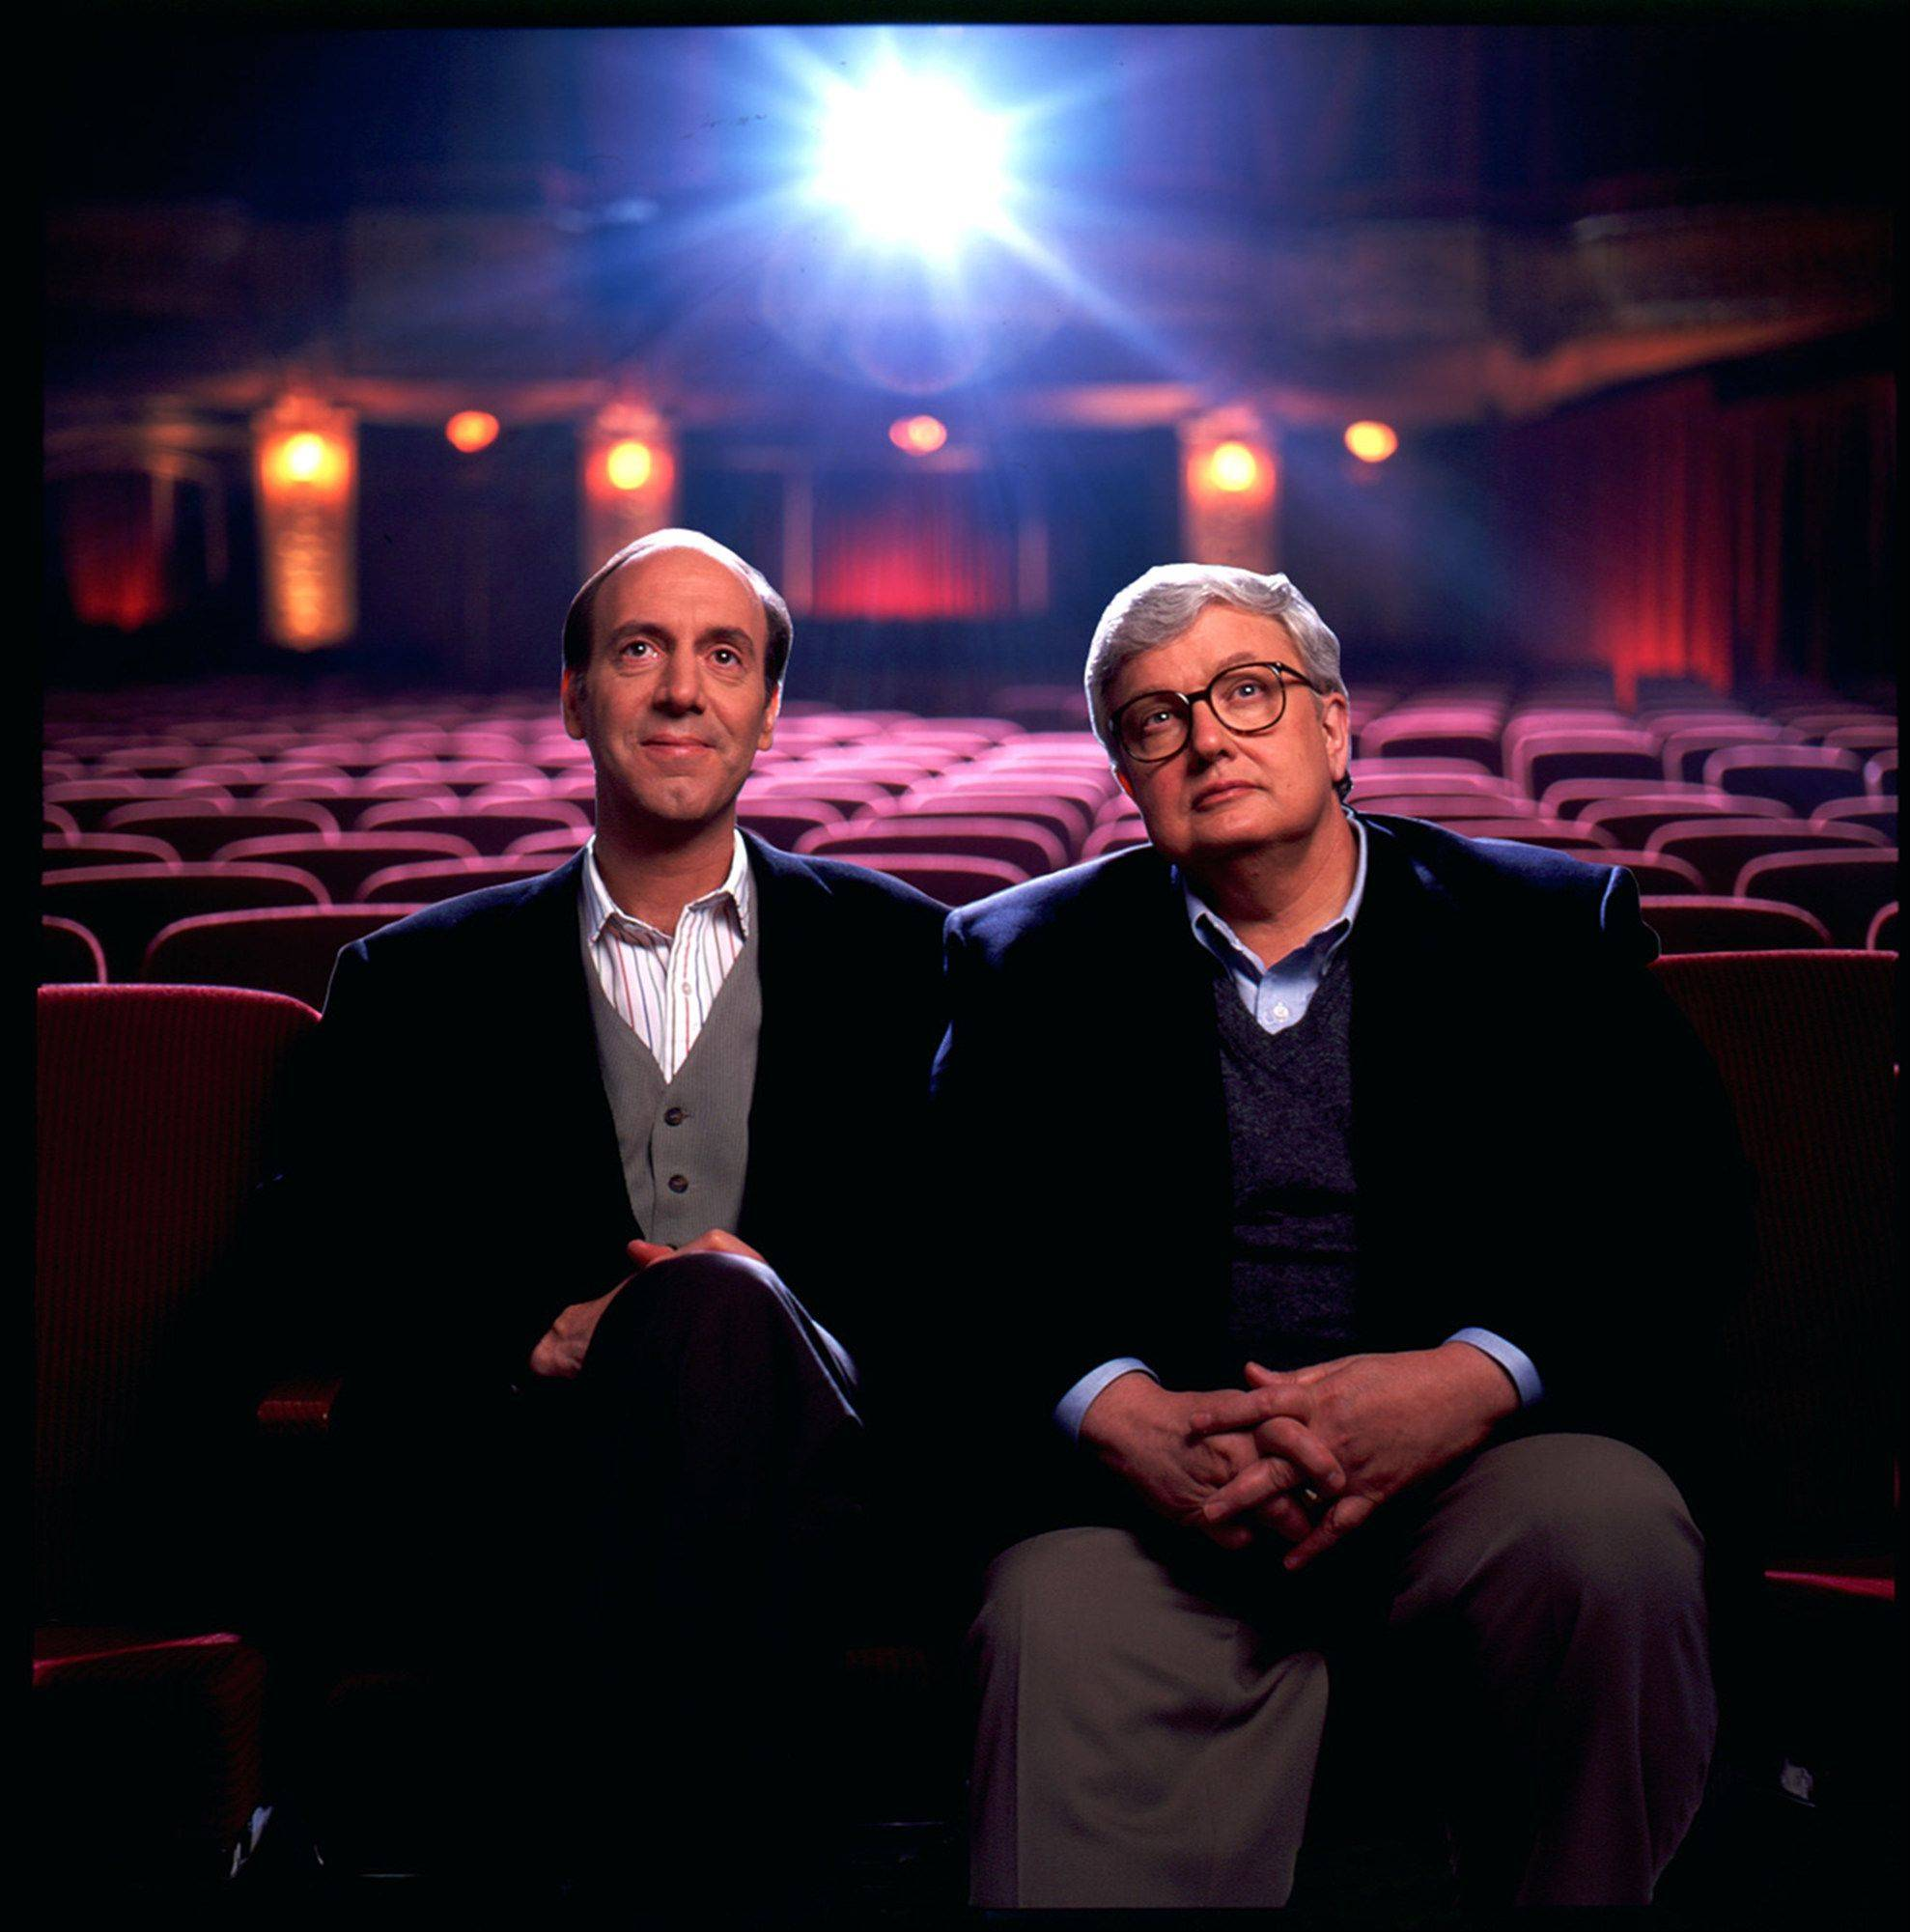 Roger Ebert, right, became a celebrity in his own right hosting a national TV show with fellow critic Gene Siskel. Their thumbs-up appraisal was actually trademarked.